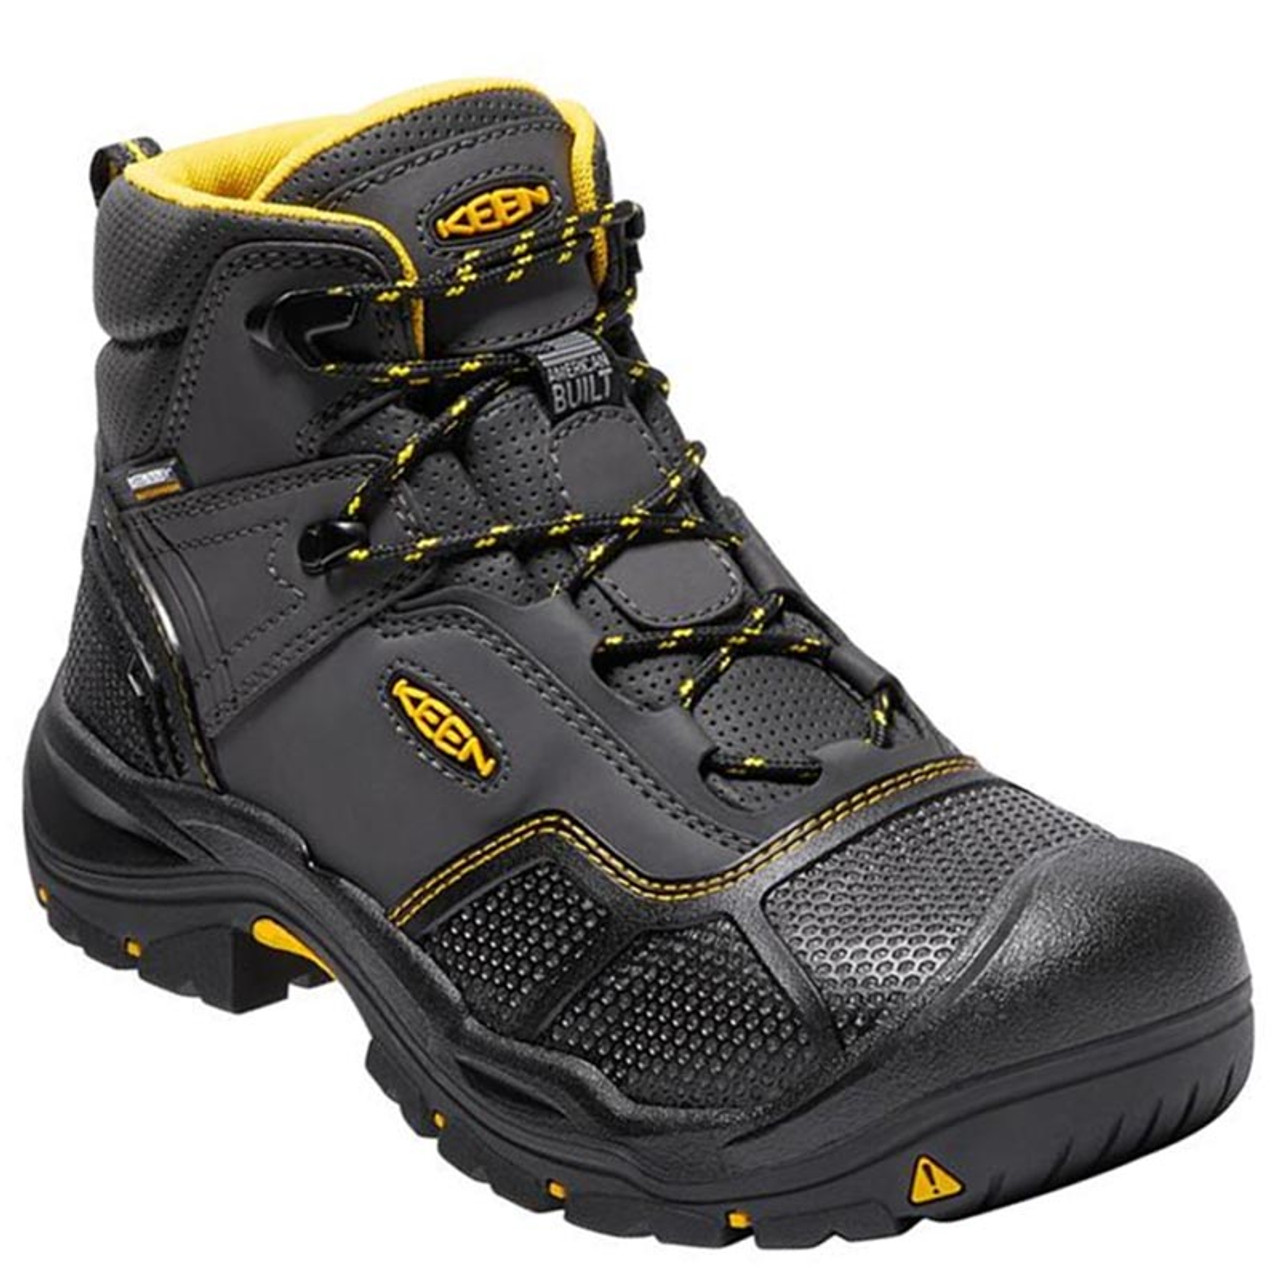 53bf4912594 Keen Utility 1017828 USA LOGANDALE Steel Toe Non-Insulated Work Boots